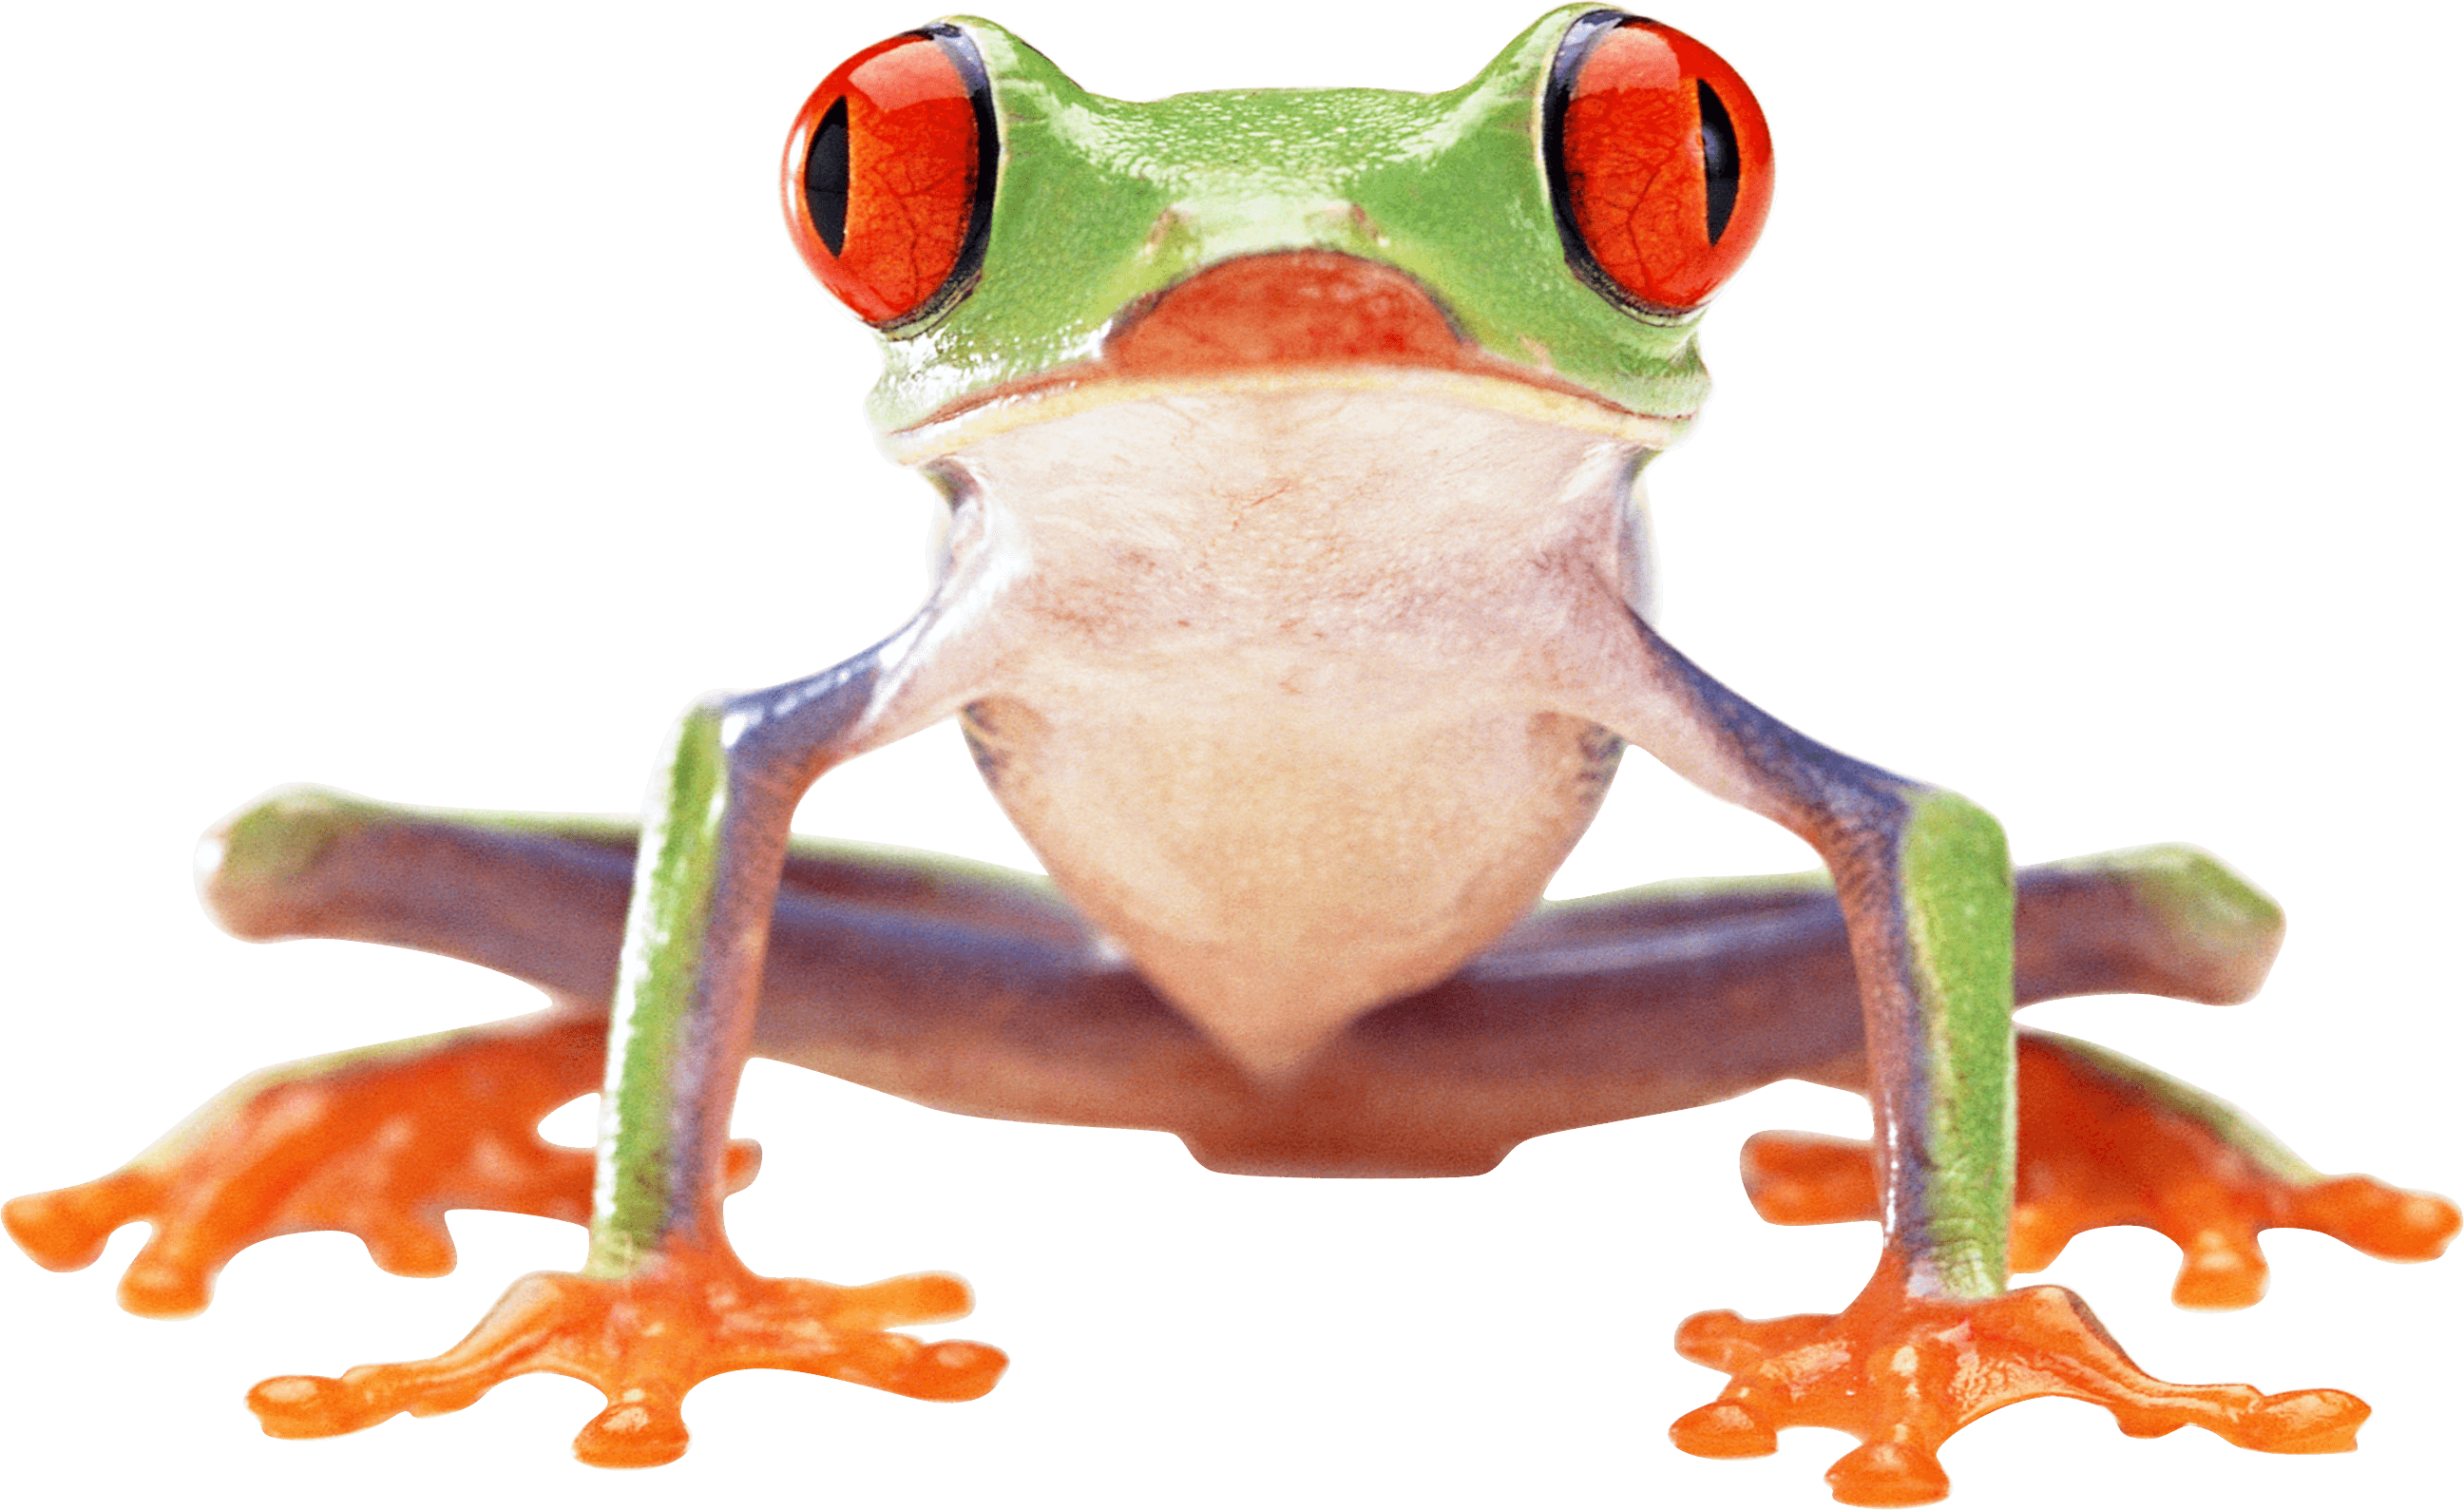 Red eyed tree frog clipart jpg freeuse library Clown Frog transparent PNG - StickPNG jpg freeuse library